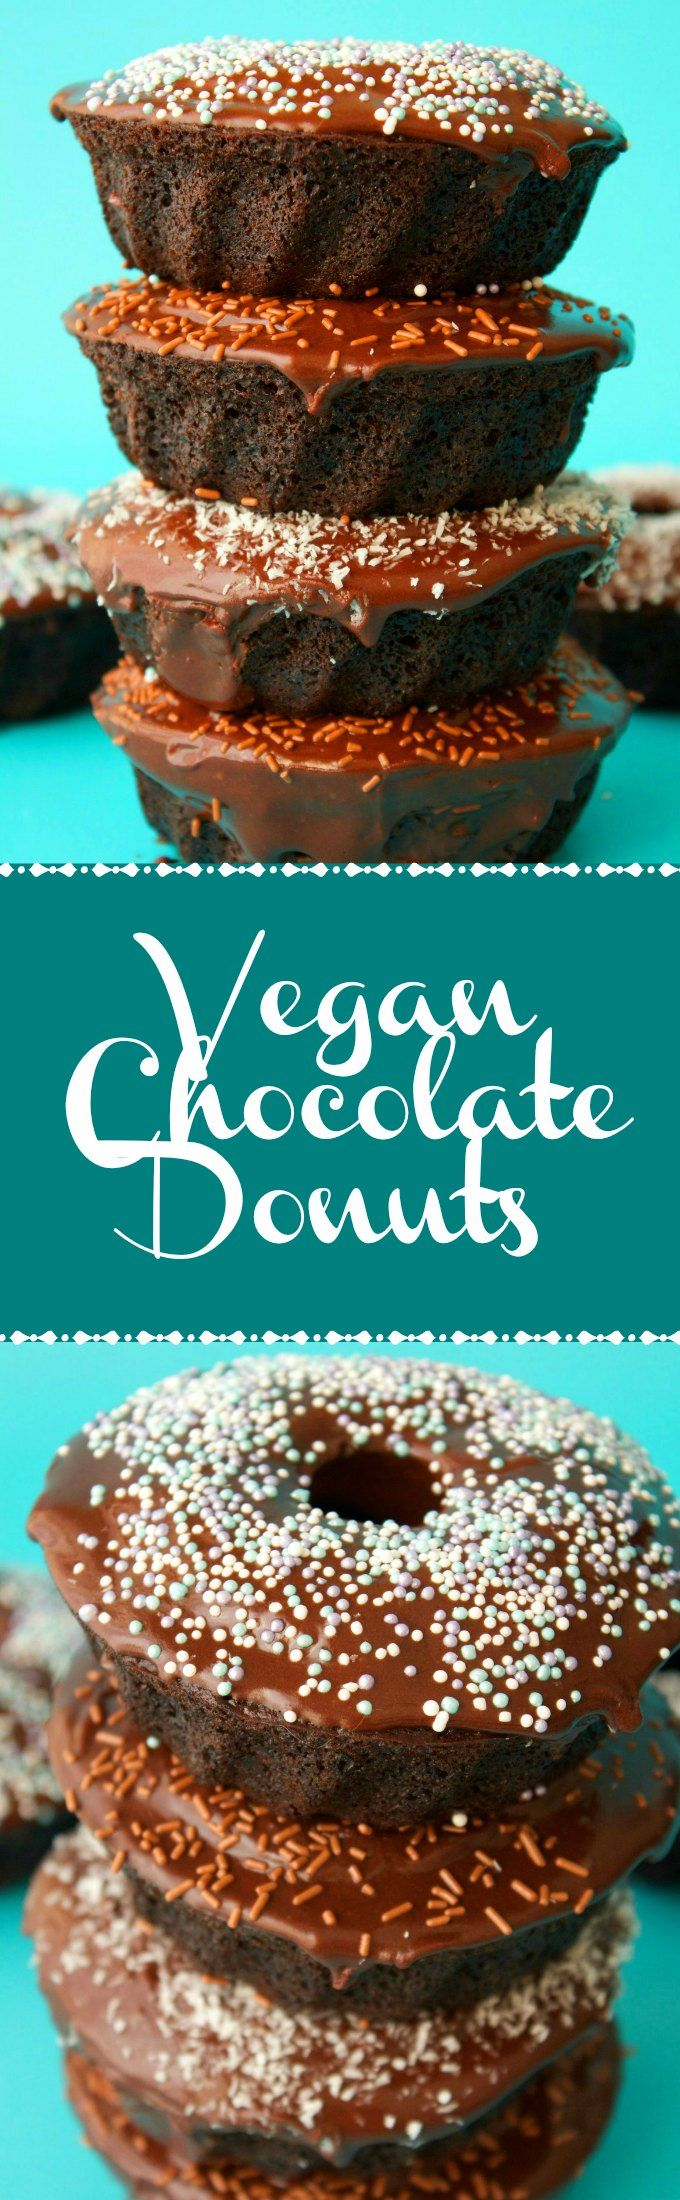 Chocolate cake style vegan chocolate donuts. These moist and delicious baked vegan donuts are super quick and easy and topped with a chocolate glaze. Vegan | Vegan Desserts | Vegan Donuts | Vegan Recipes | Vegan Food | lovingitvegan.com